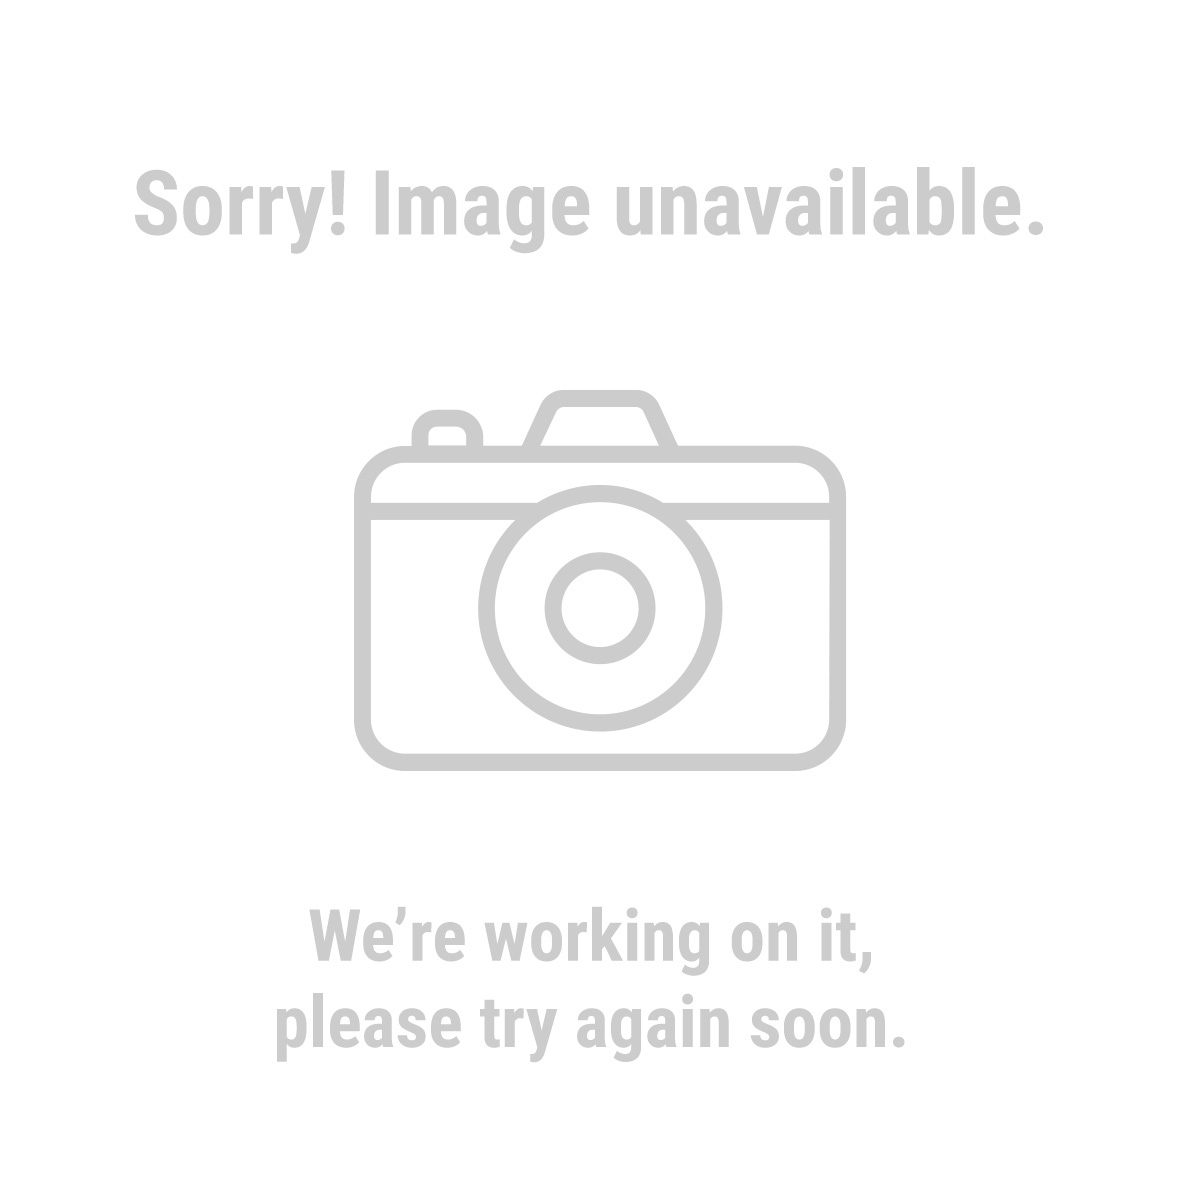 Warrior 68872 15 Piece Woodworking Router Bit Set for Table Routers